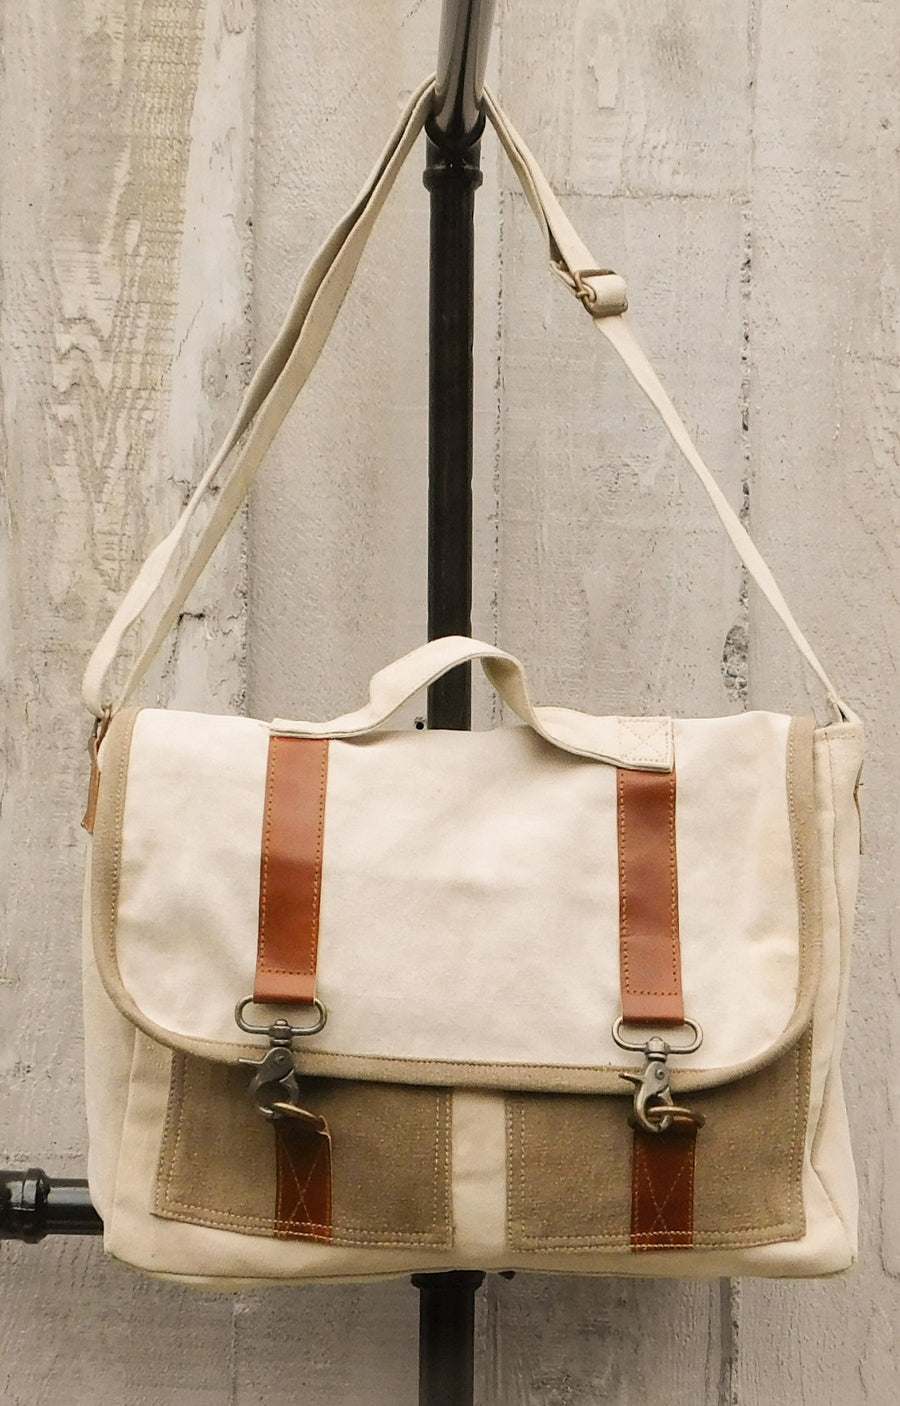 Univeristy Messenger Bag by Chloe and Lex